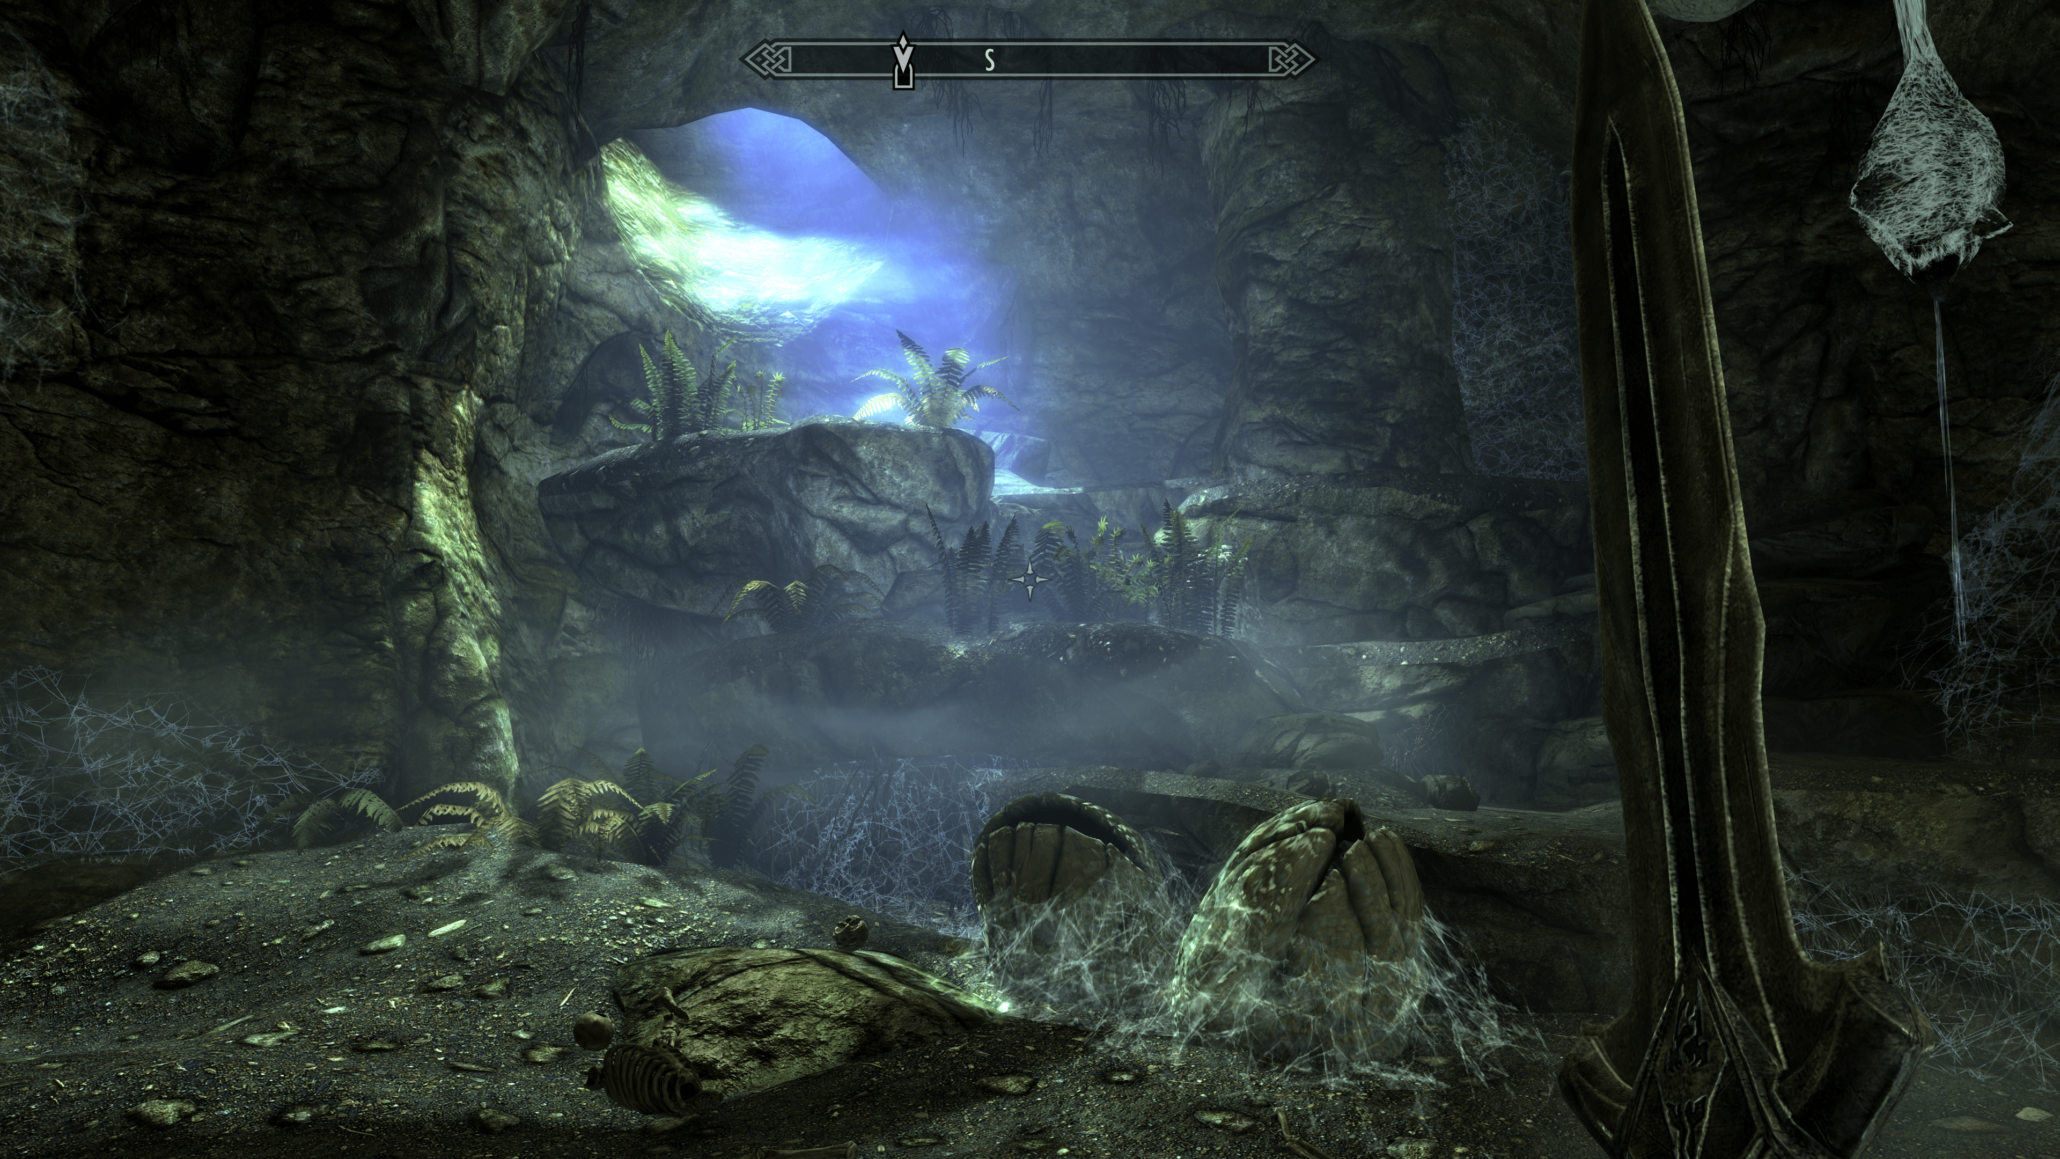 Take a Look at These Skyrim Special Edition 4K PS4 Pro Uncompressed